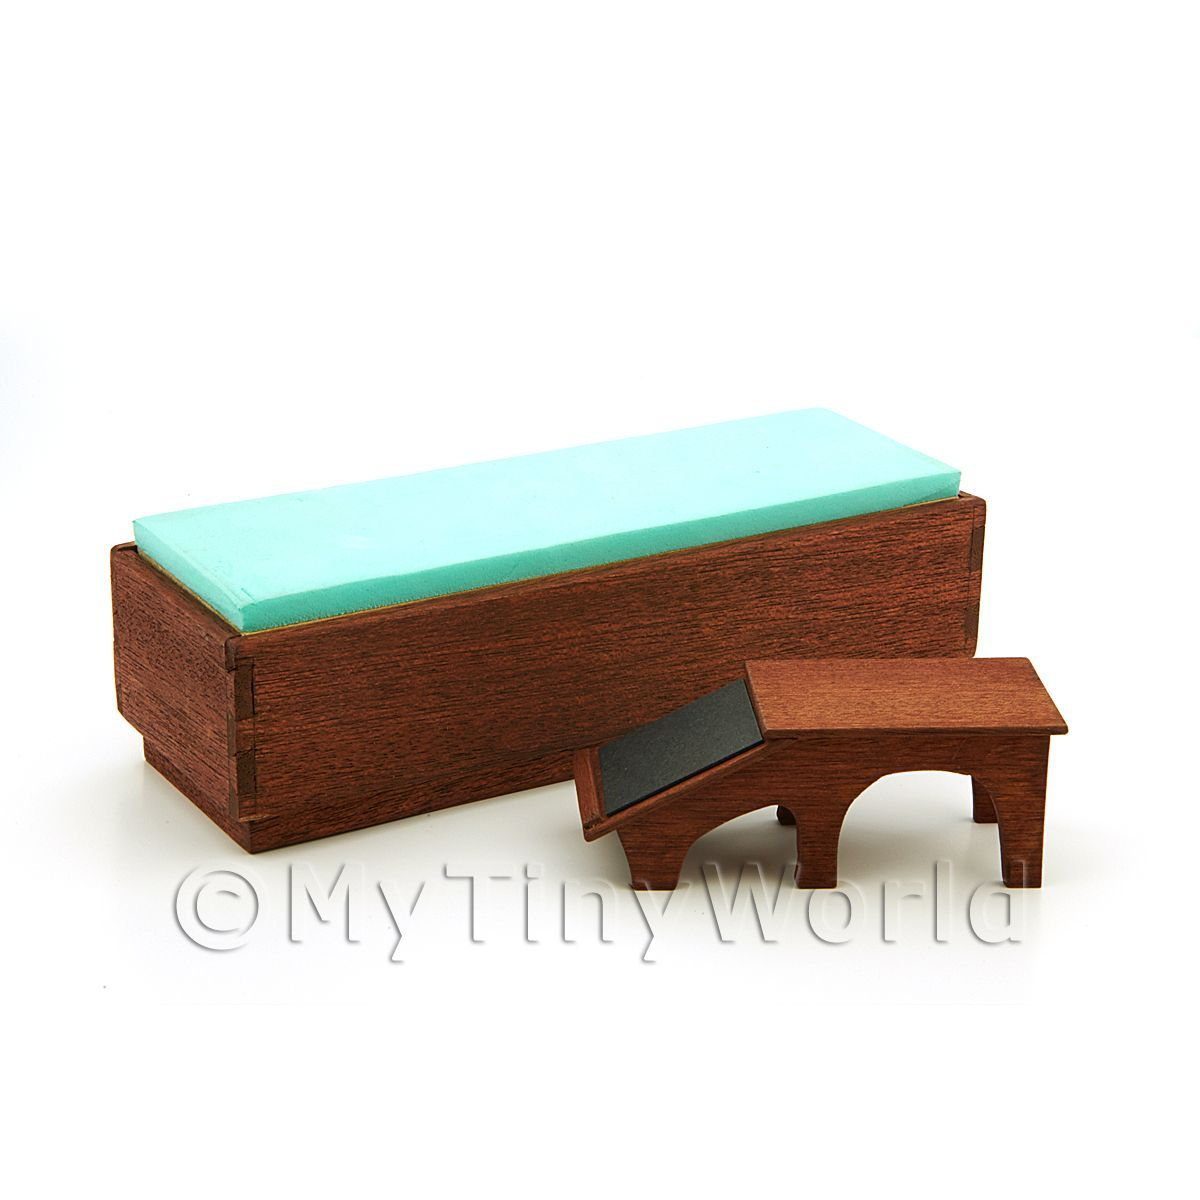 Handmade Miniature Shop Bench Seat and Foot Stool